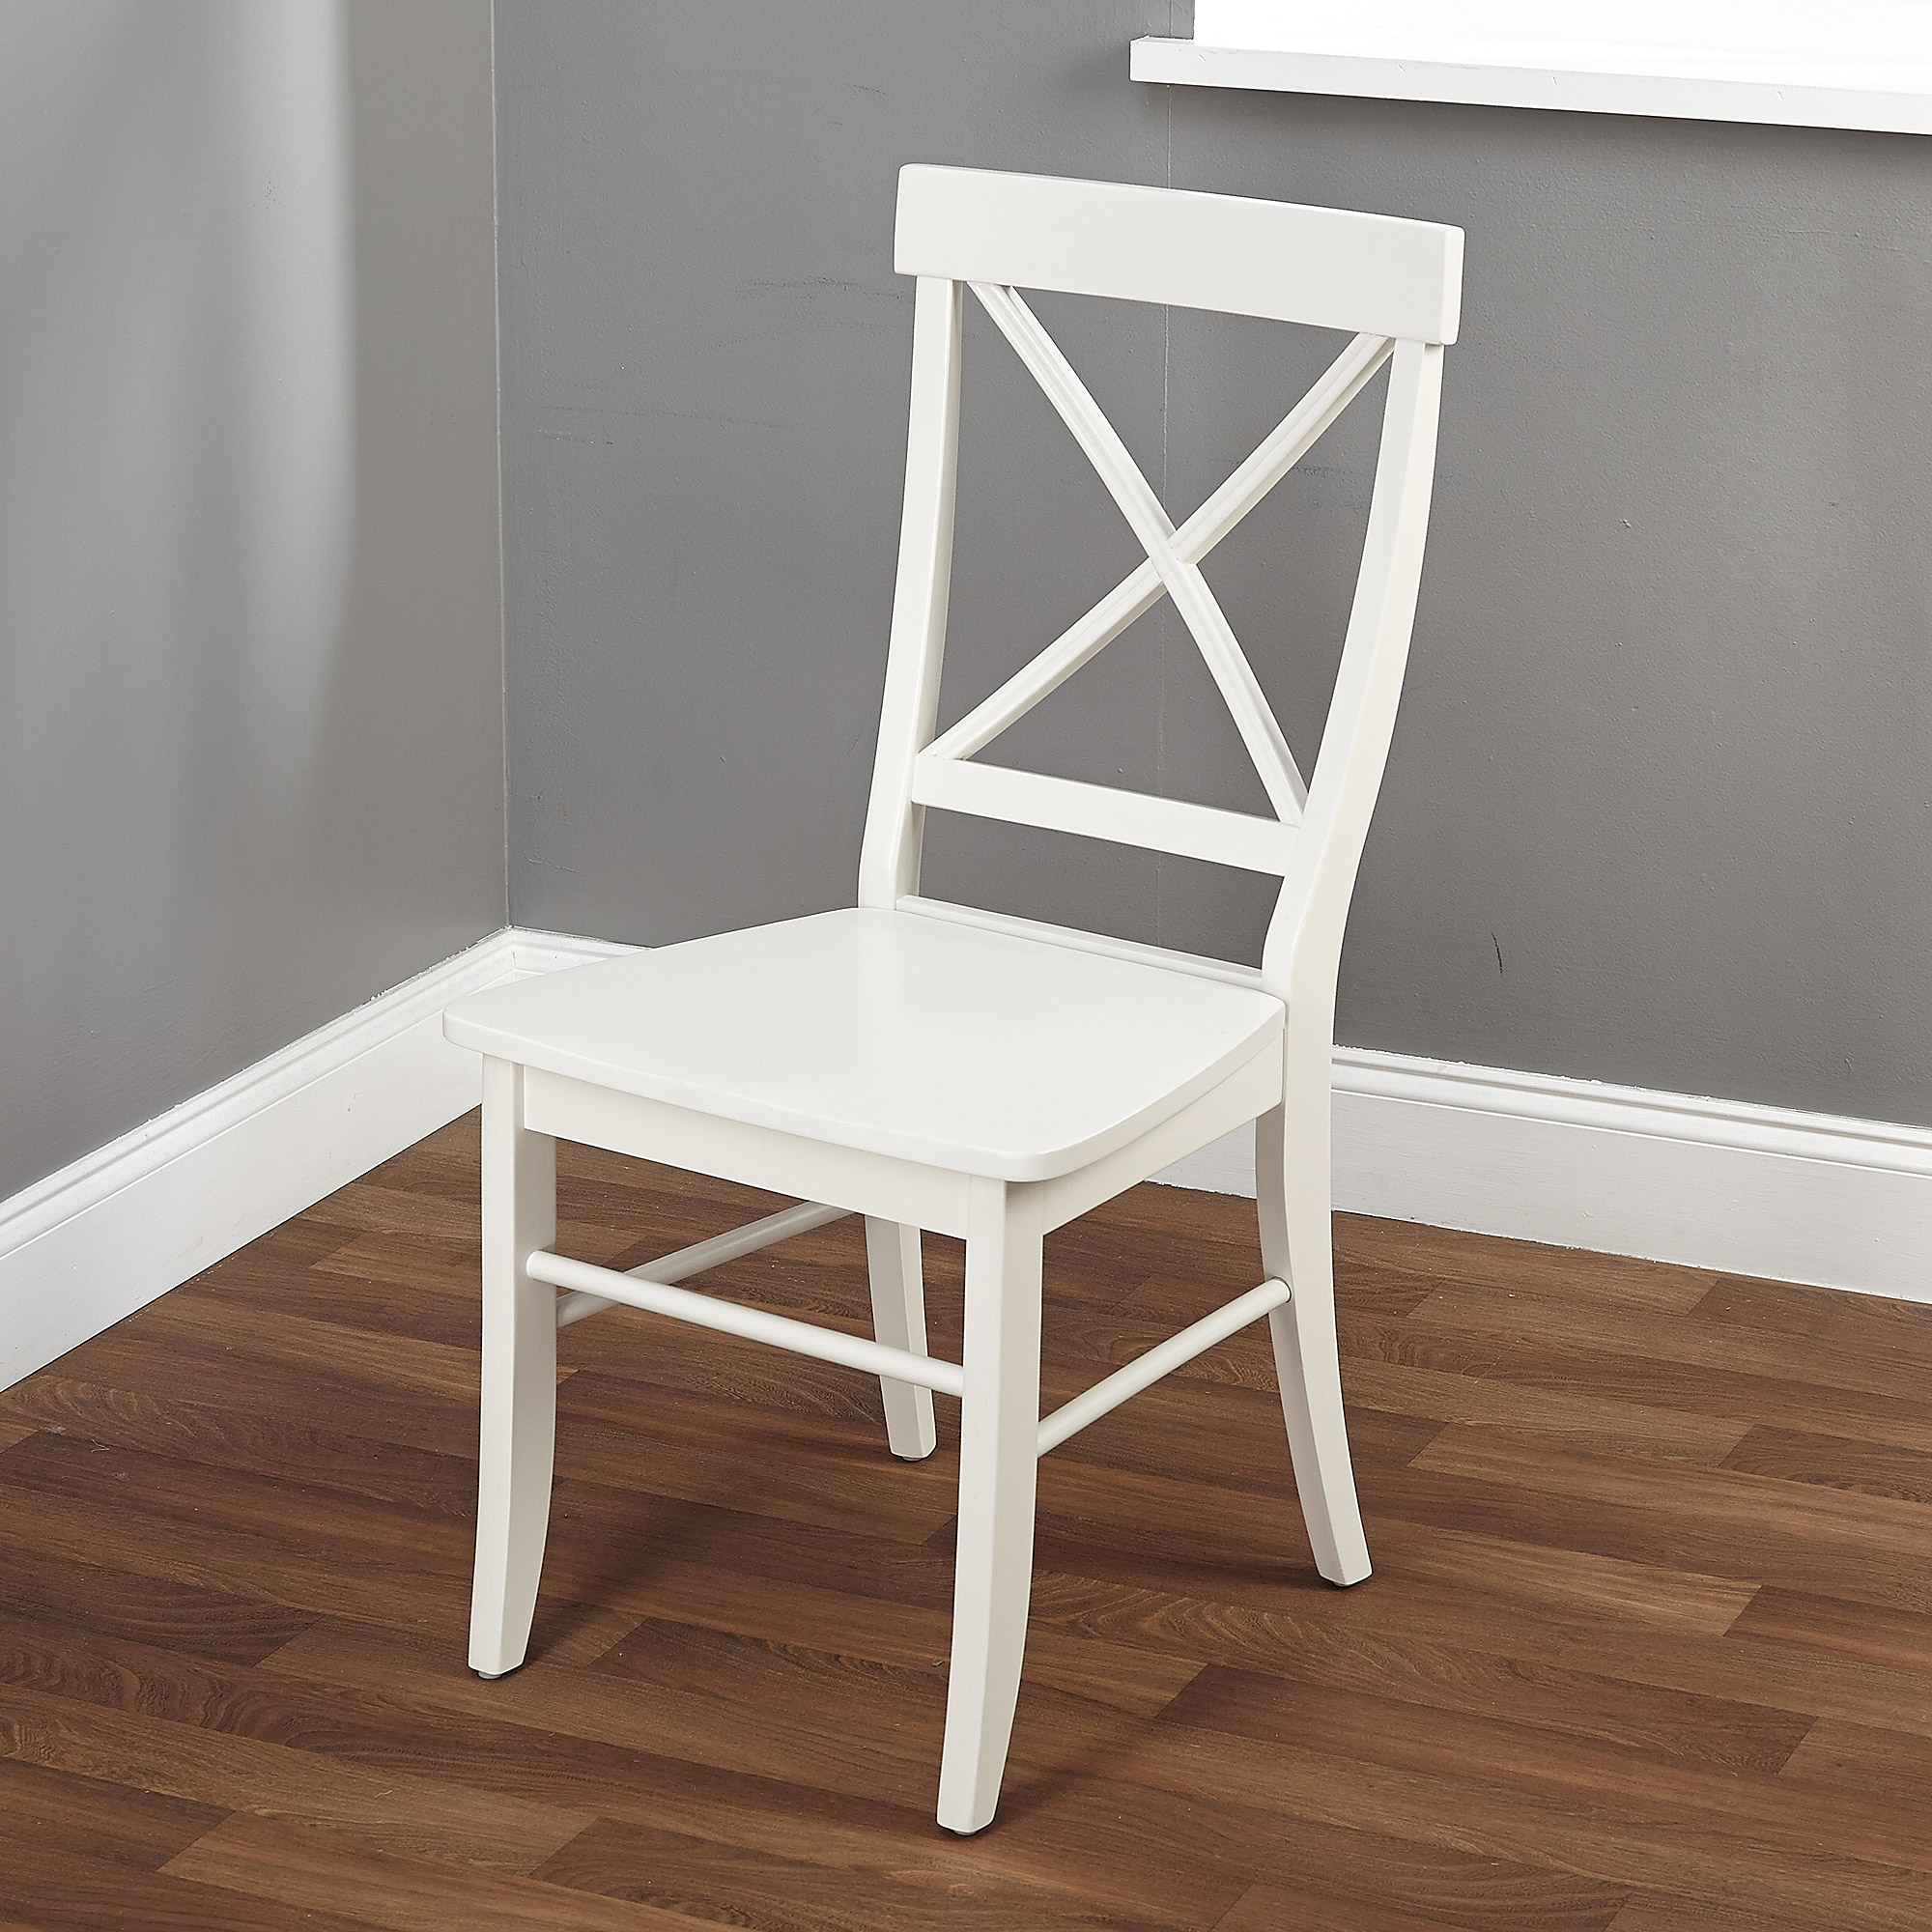 white wooden chair for desk wedding covers torquay easton crossback multiple colors walmart com